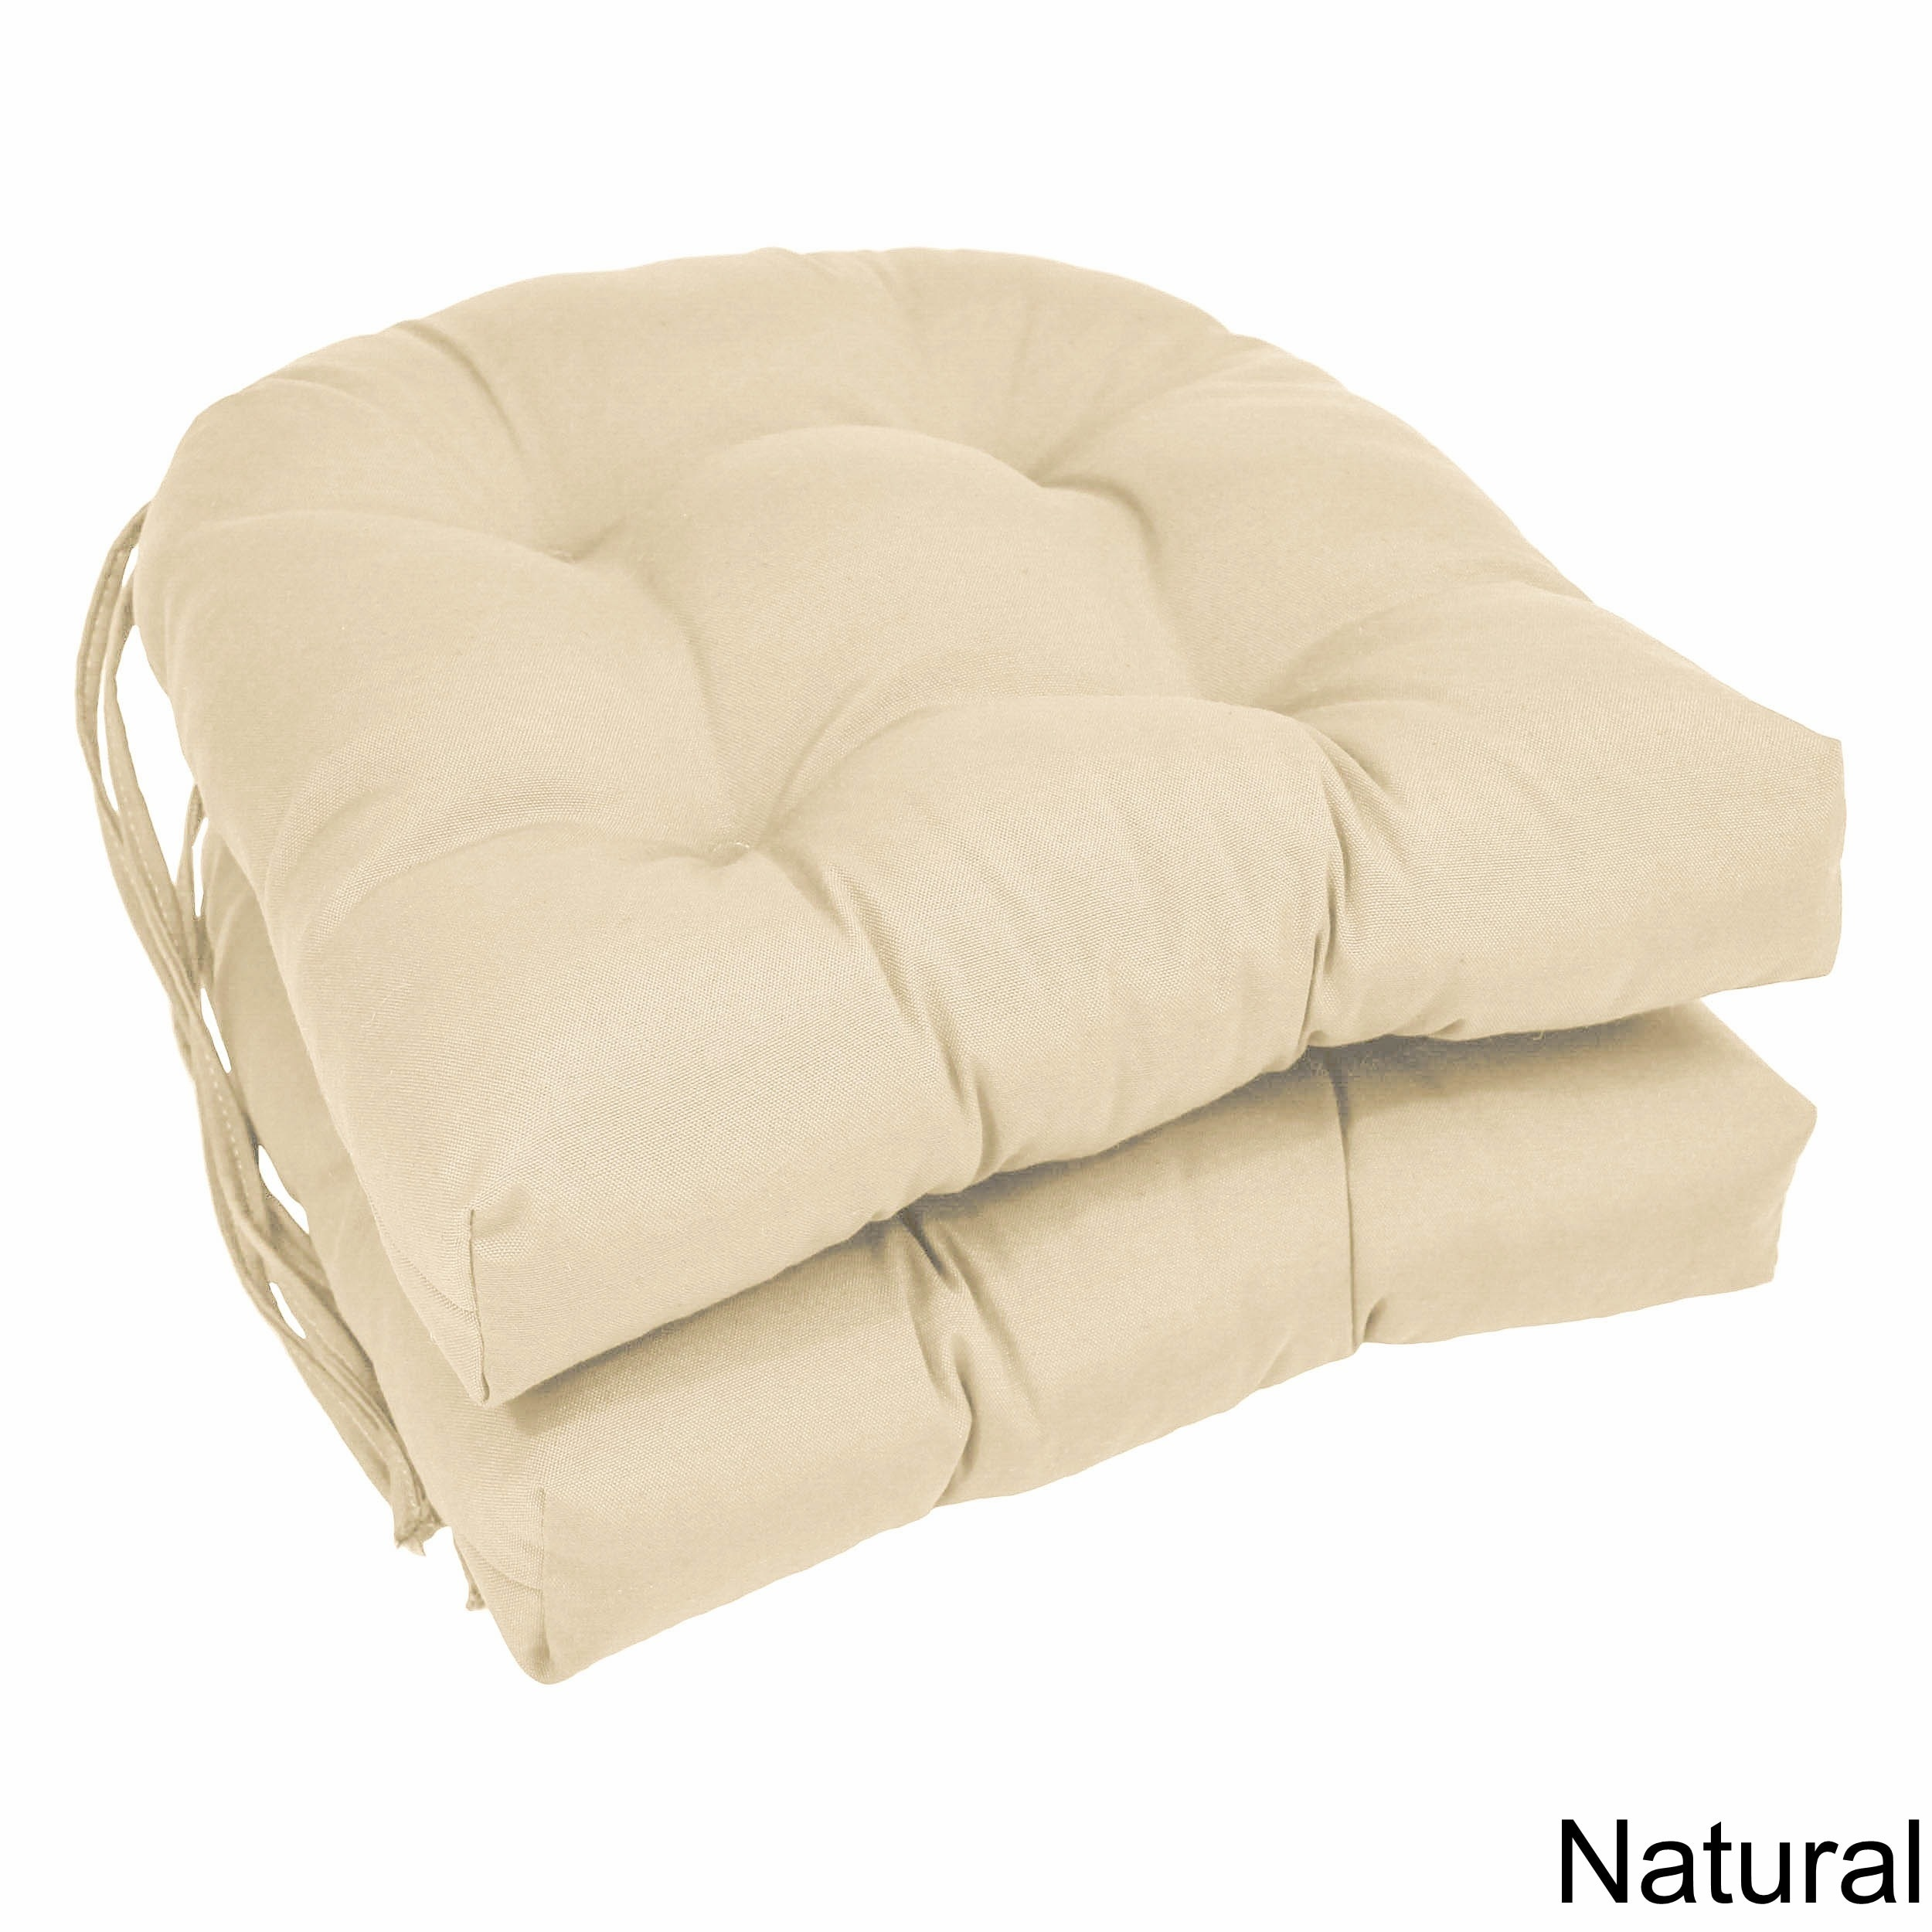 U shaped dining chair cushions home ideas for U shaped dining room chair cushions